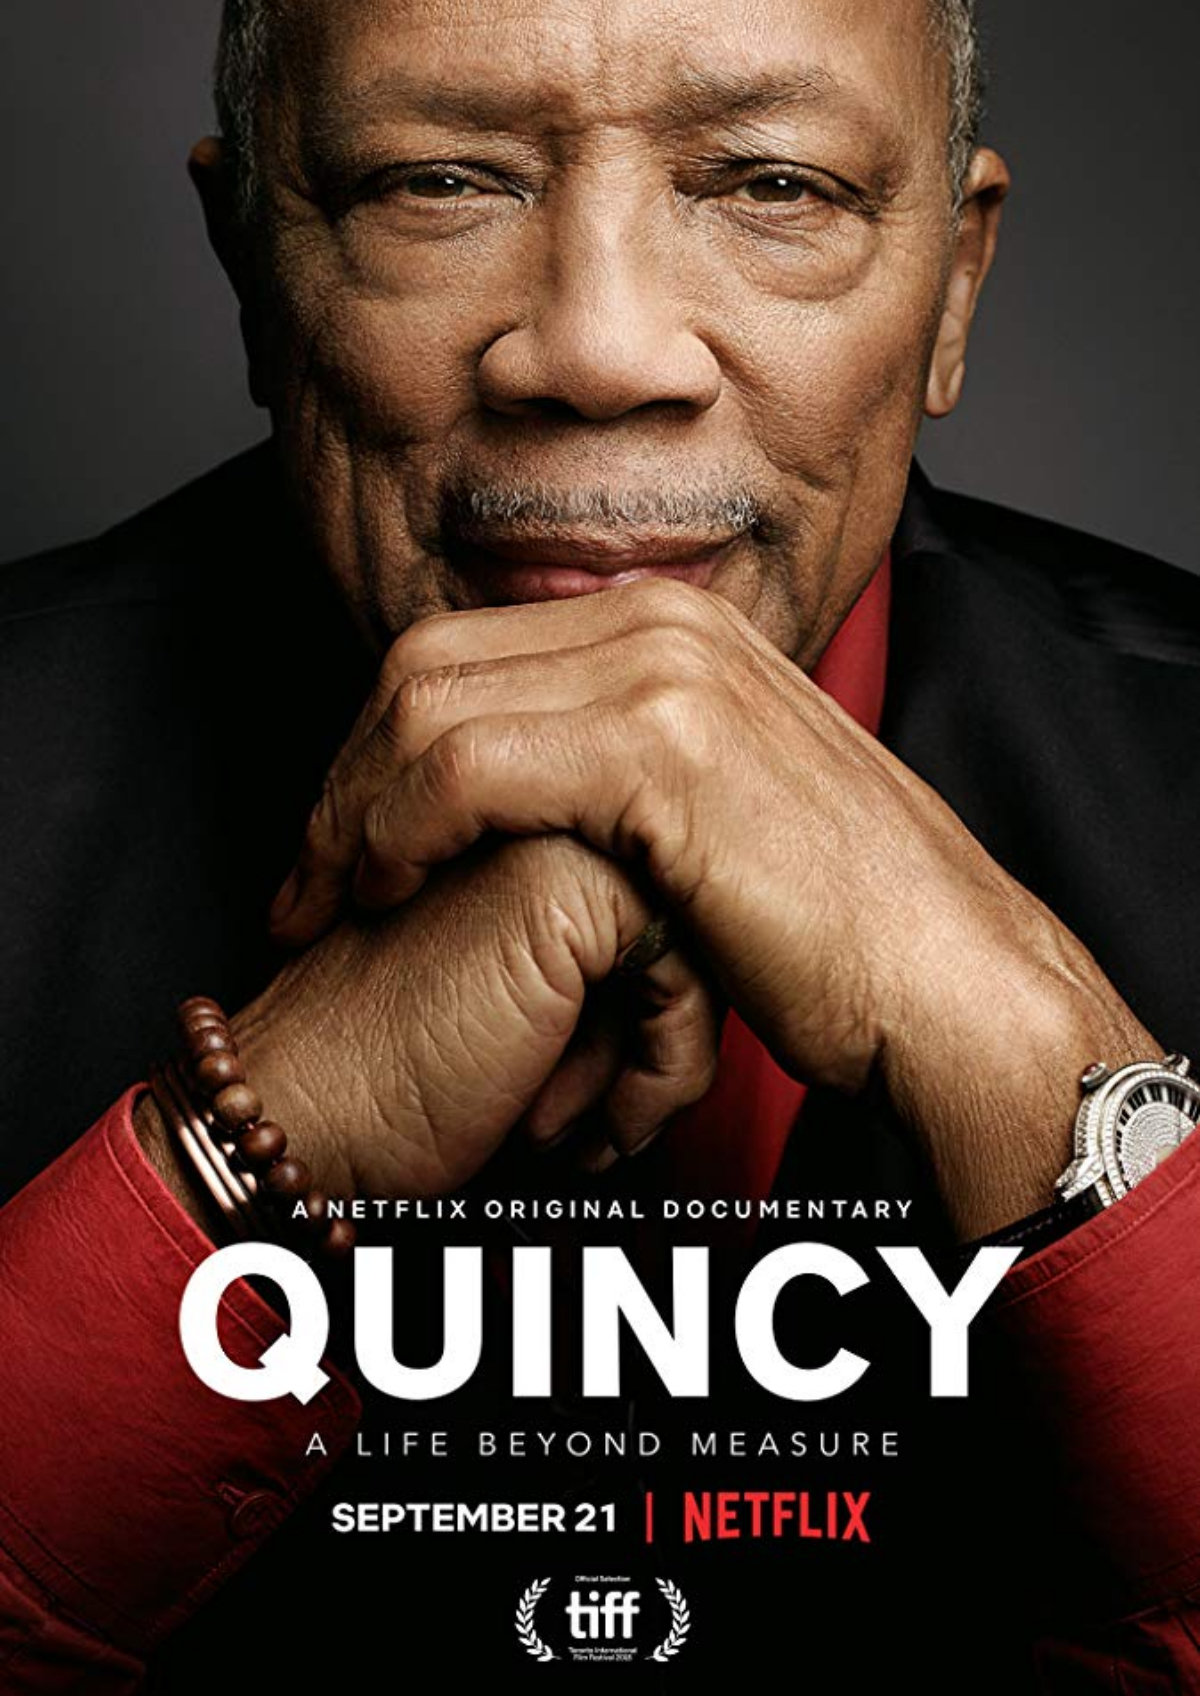 'Quincy' movie poster